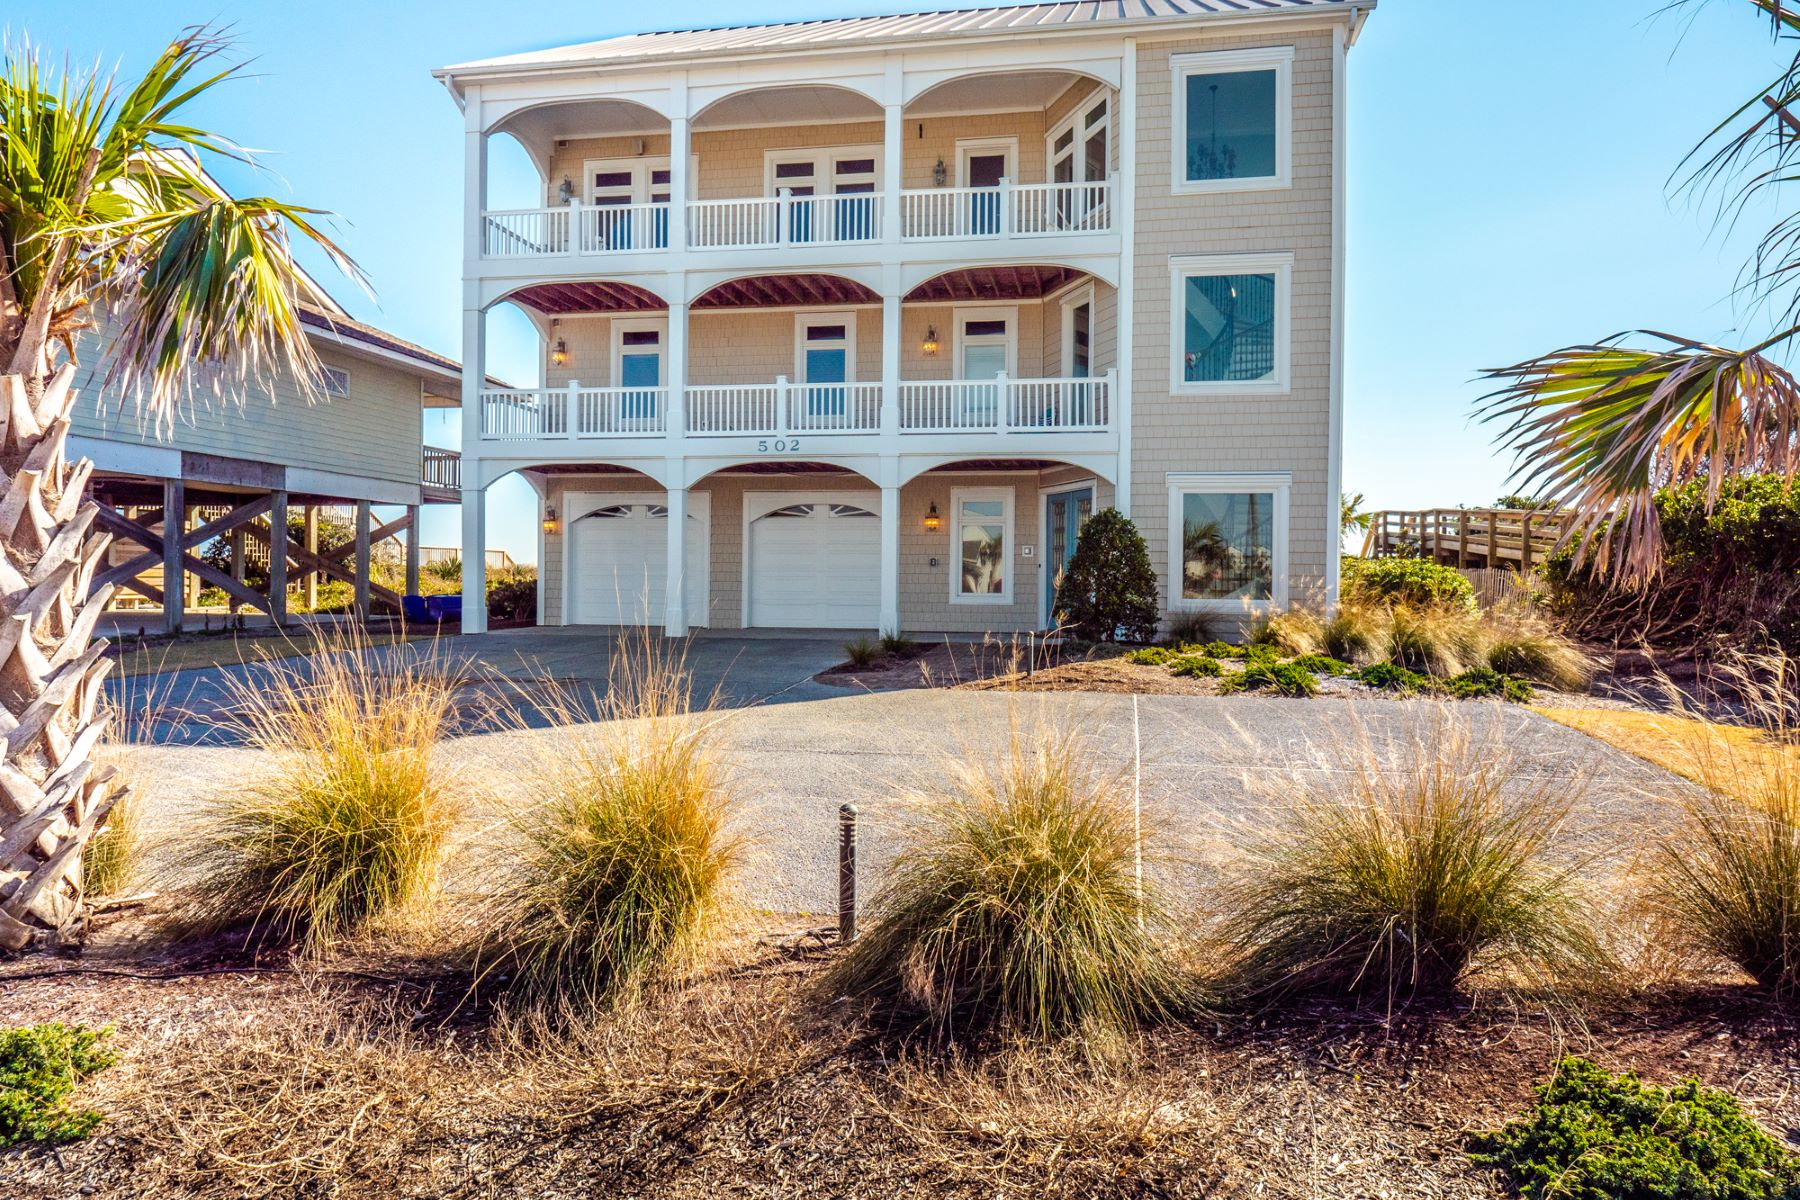 Single Family Homes for Sale at Oceanfront Custom Design Beach Home 502 N Shore Drive Surf City, North Carolina 28445 United States